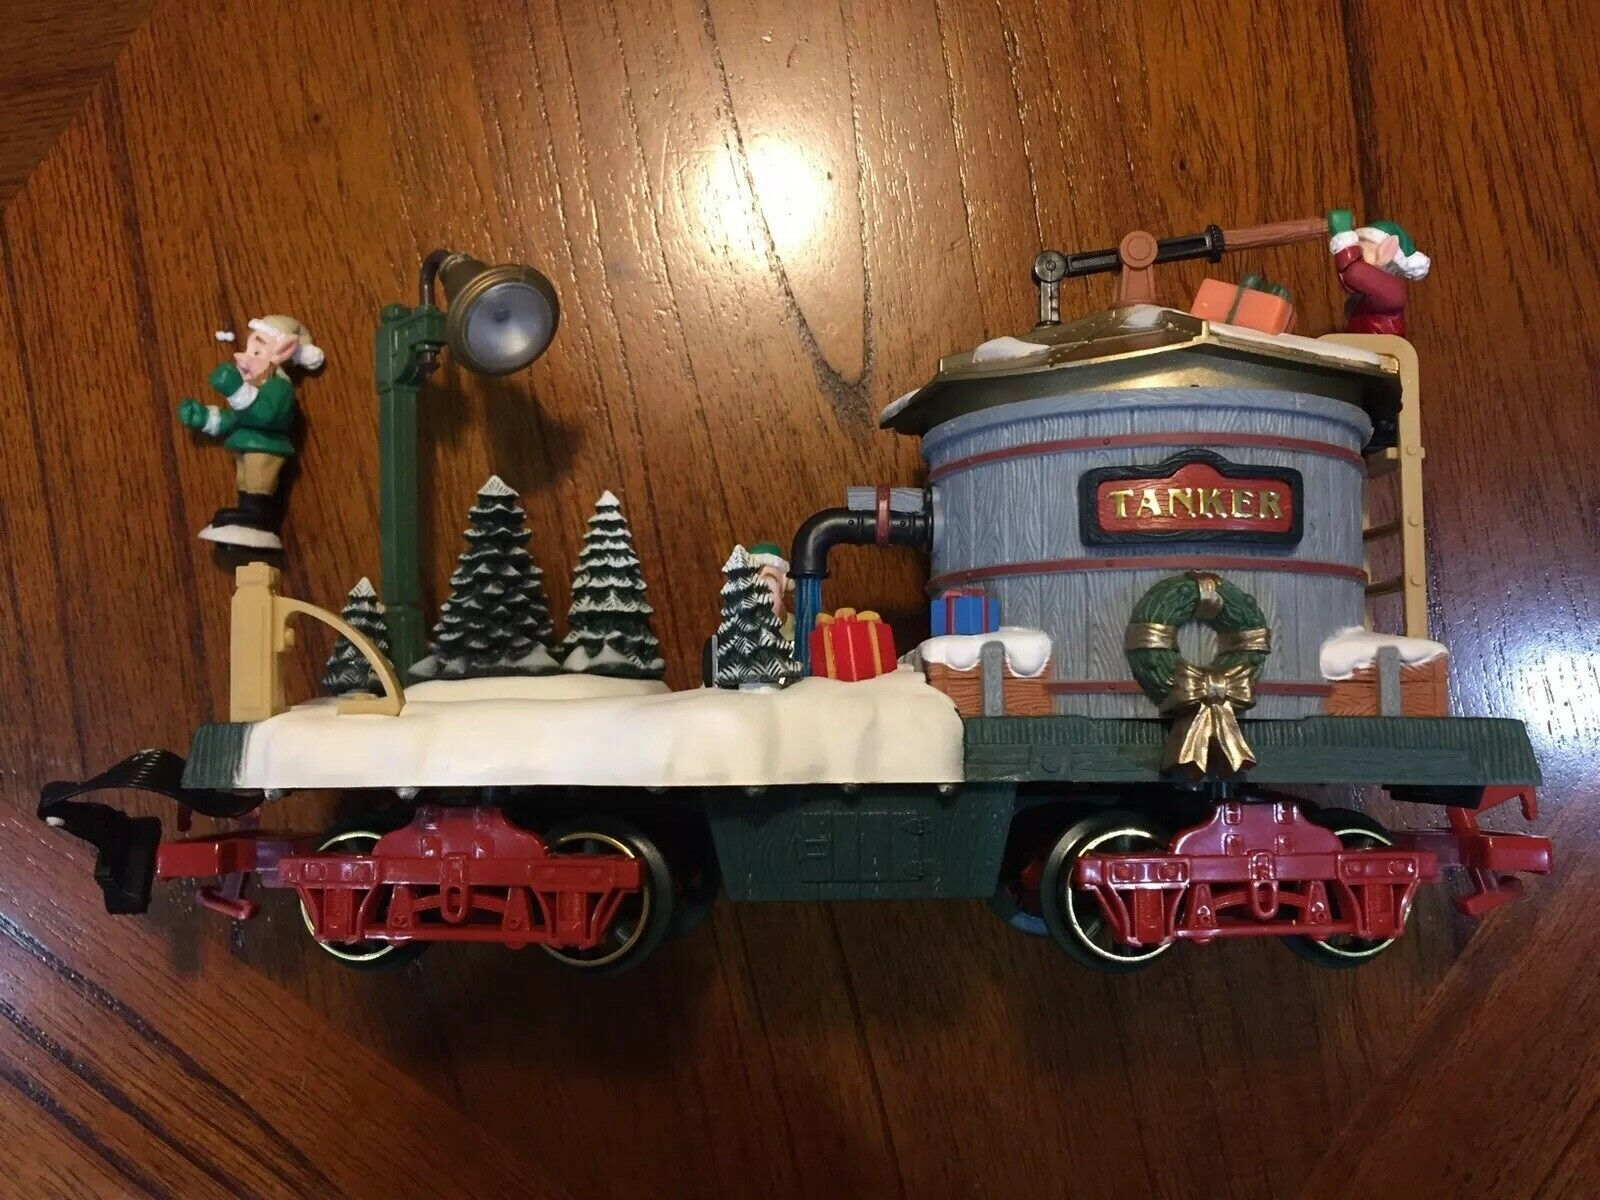 New Bright Holiday Express 384-2, Water Tanker Skating Car, Excellent Condition